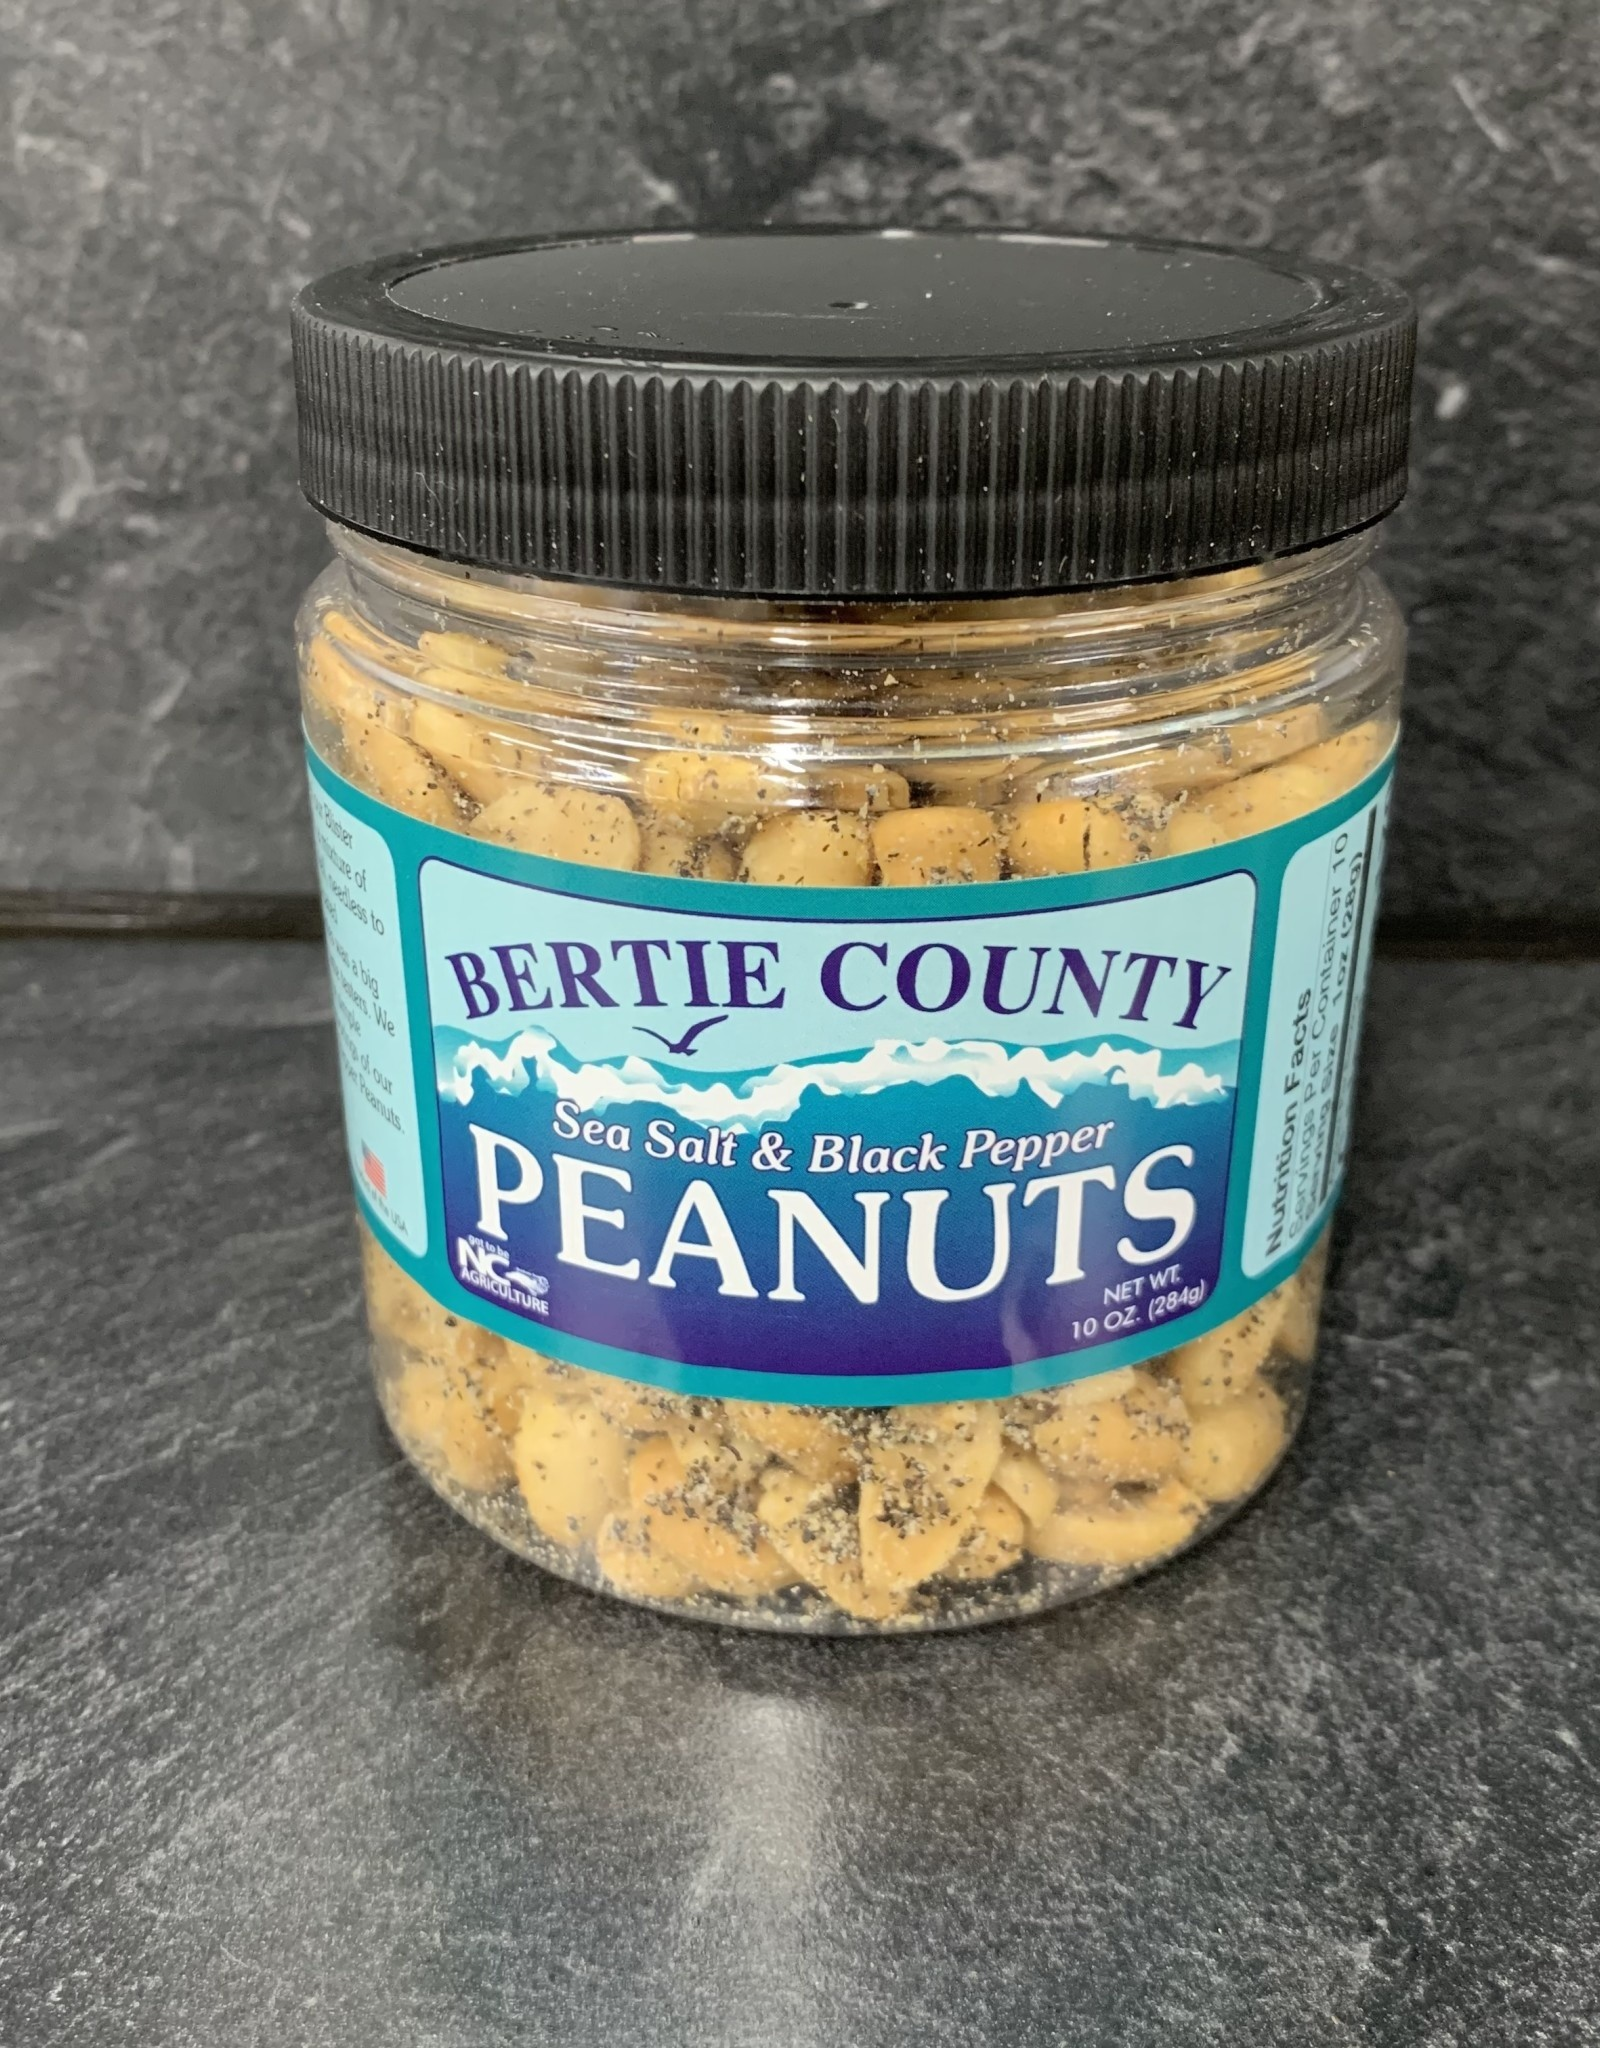 BERTIE CO SEA SALT & BLACK PEPER PEANUTS 10oz